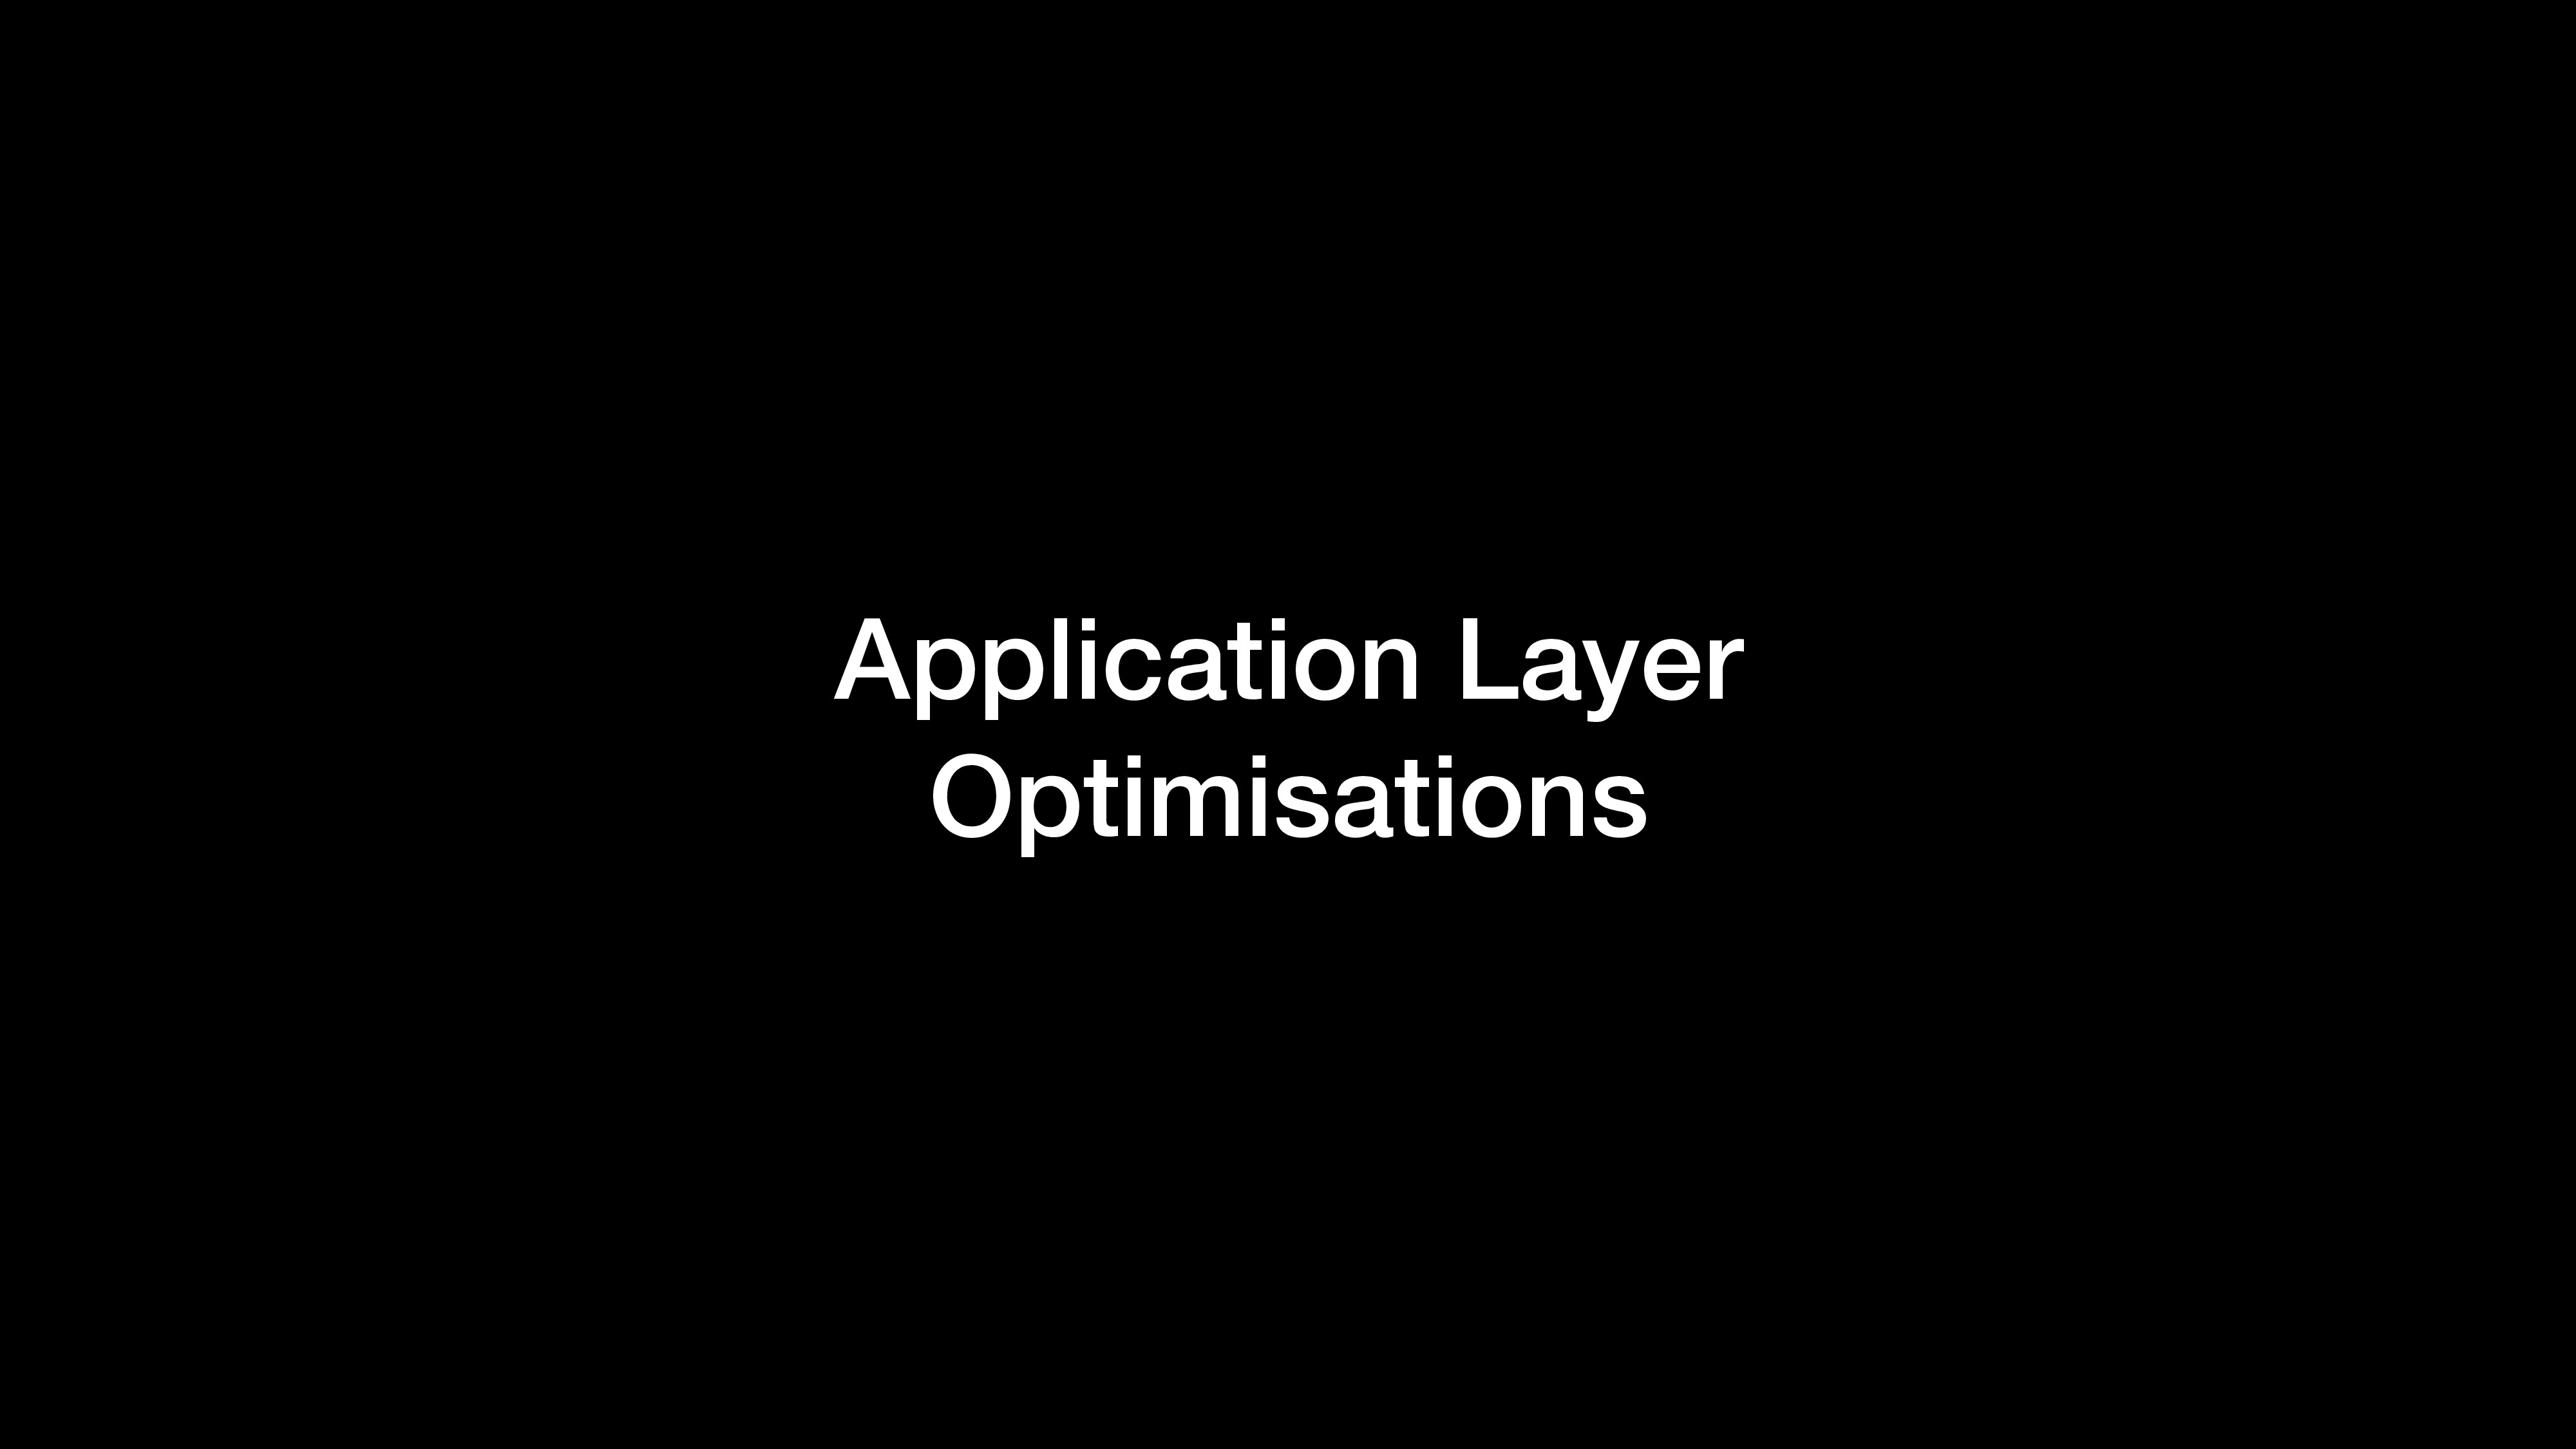 Application Layer Optimisations